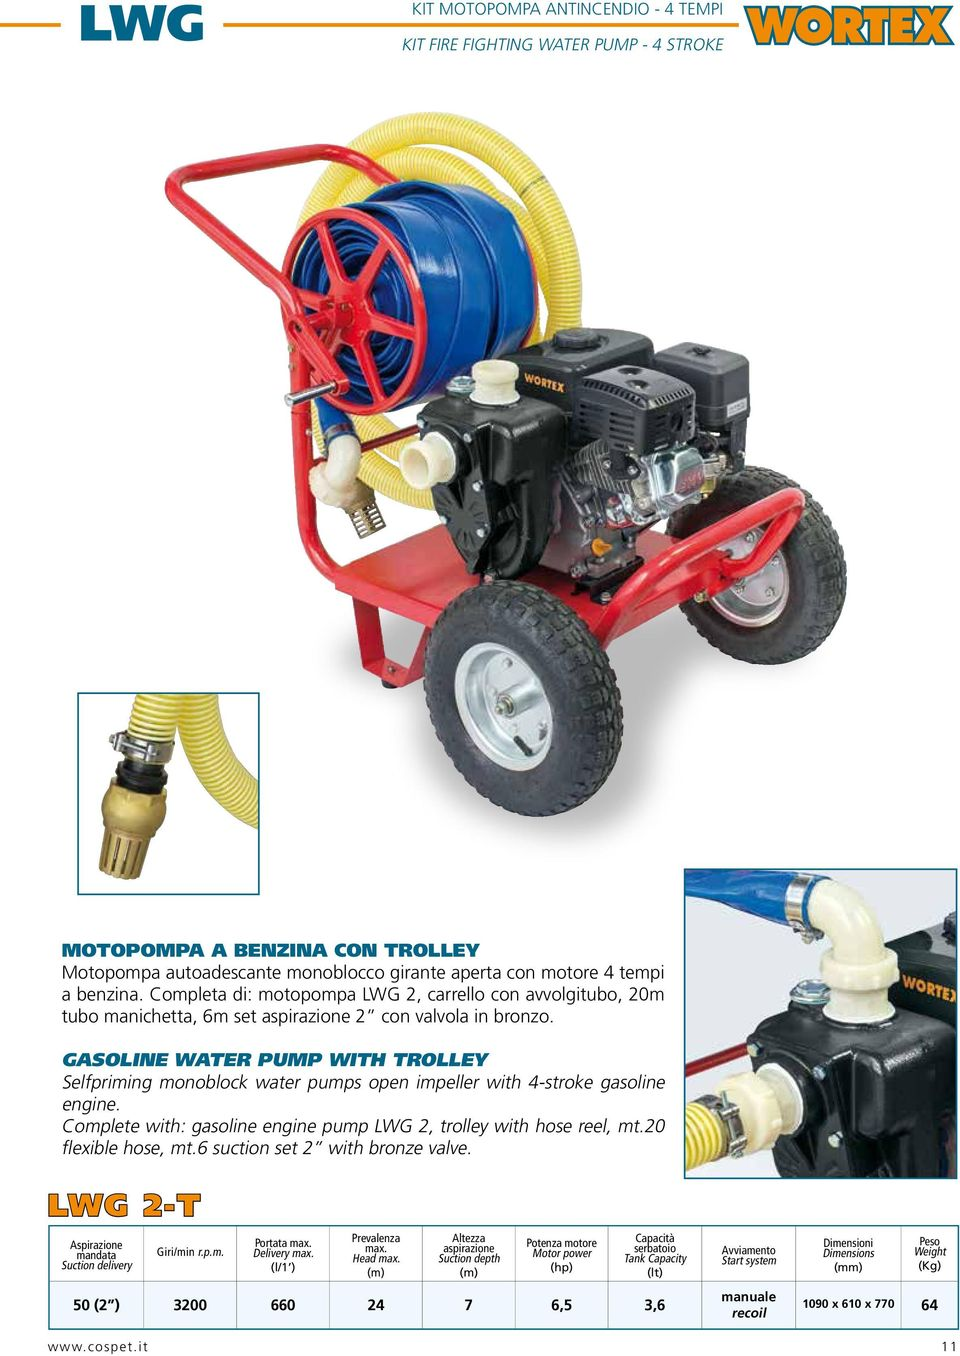 GASOLINE WATER PUMP WITH TROLLEY Selfpriming monoblock water pumps open impeller with 4-stroke gasoline engine. Complete with: gasoline engine pump LWG 2, trolley with hose reel, mt.